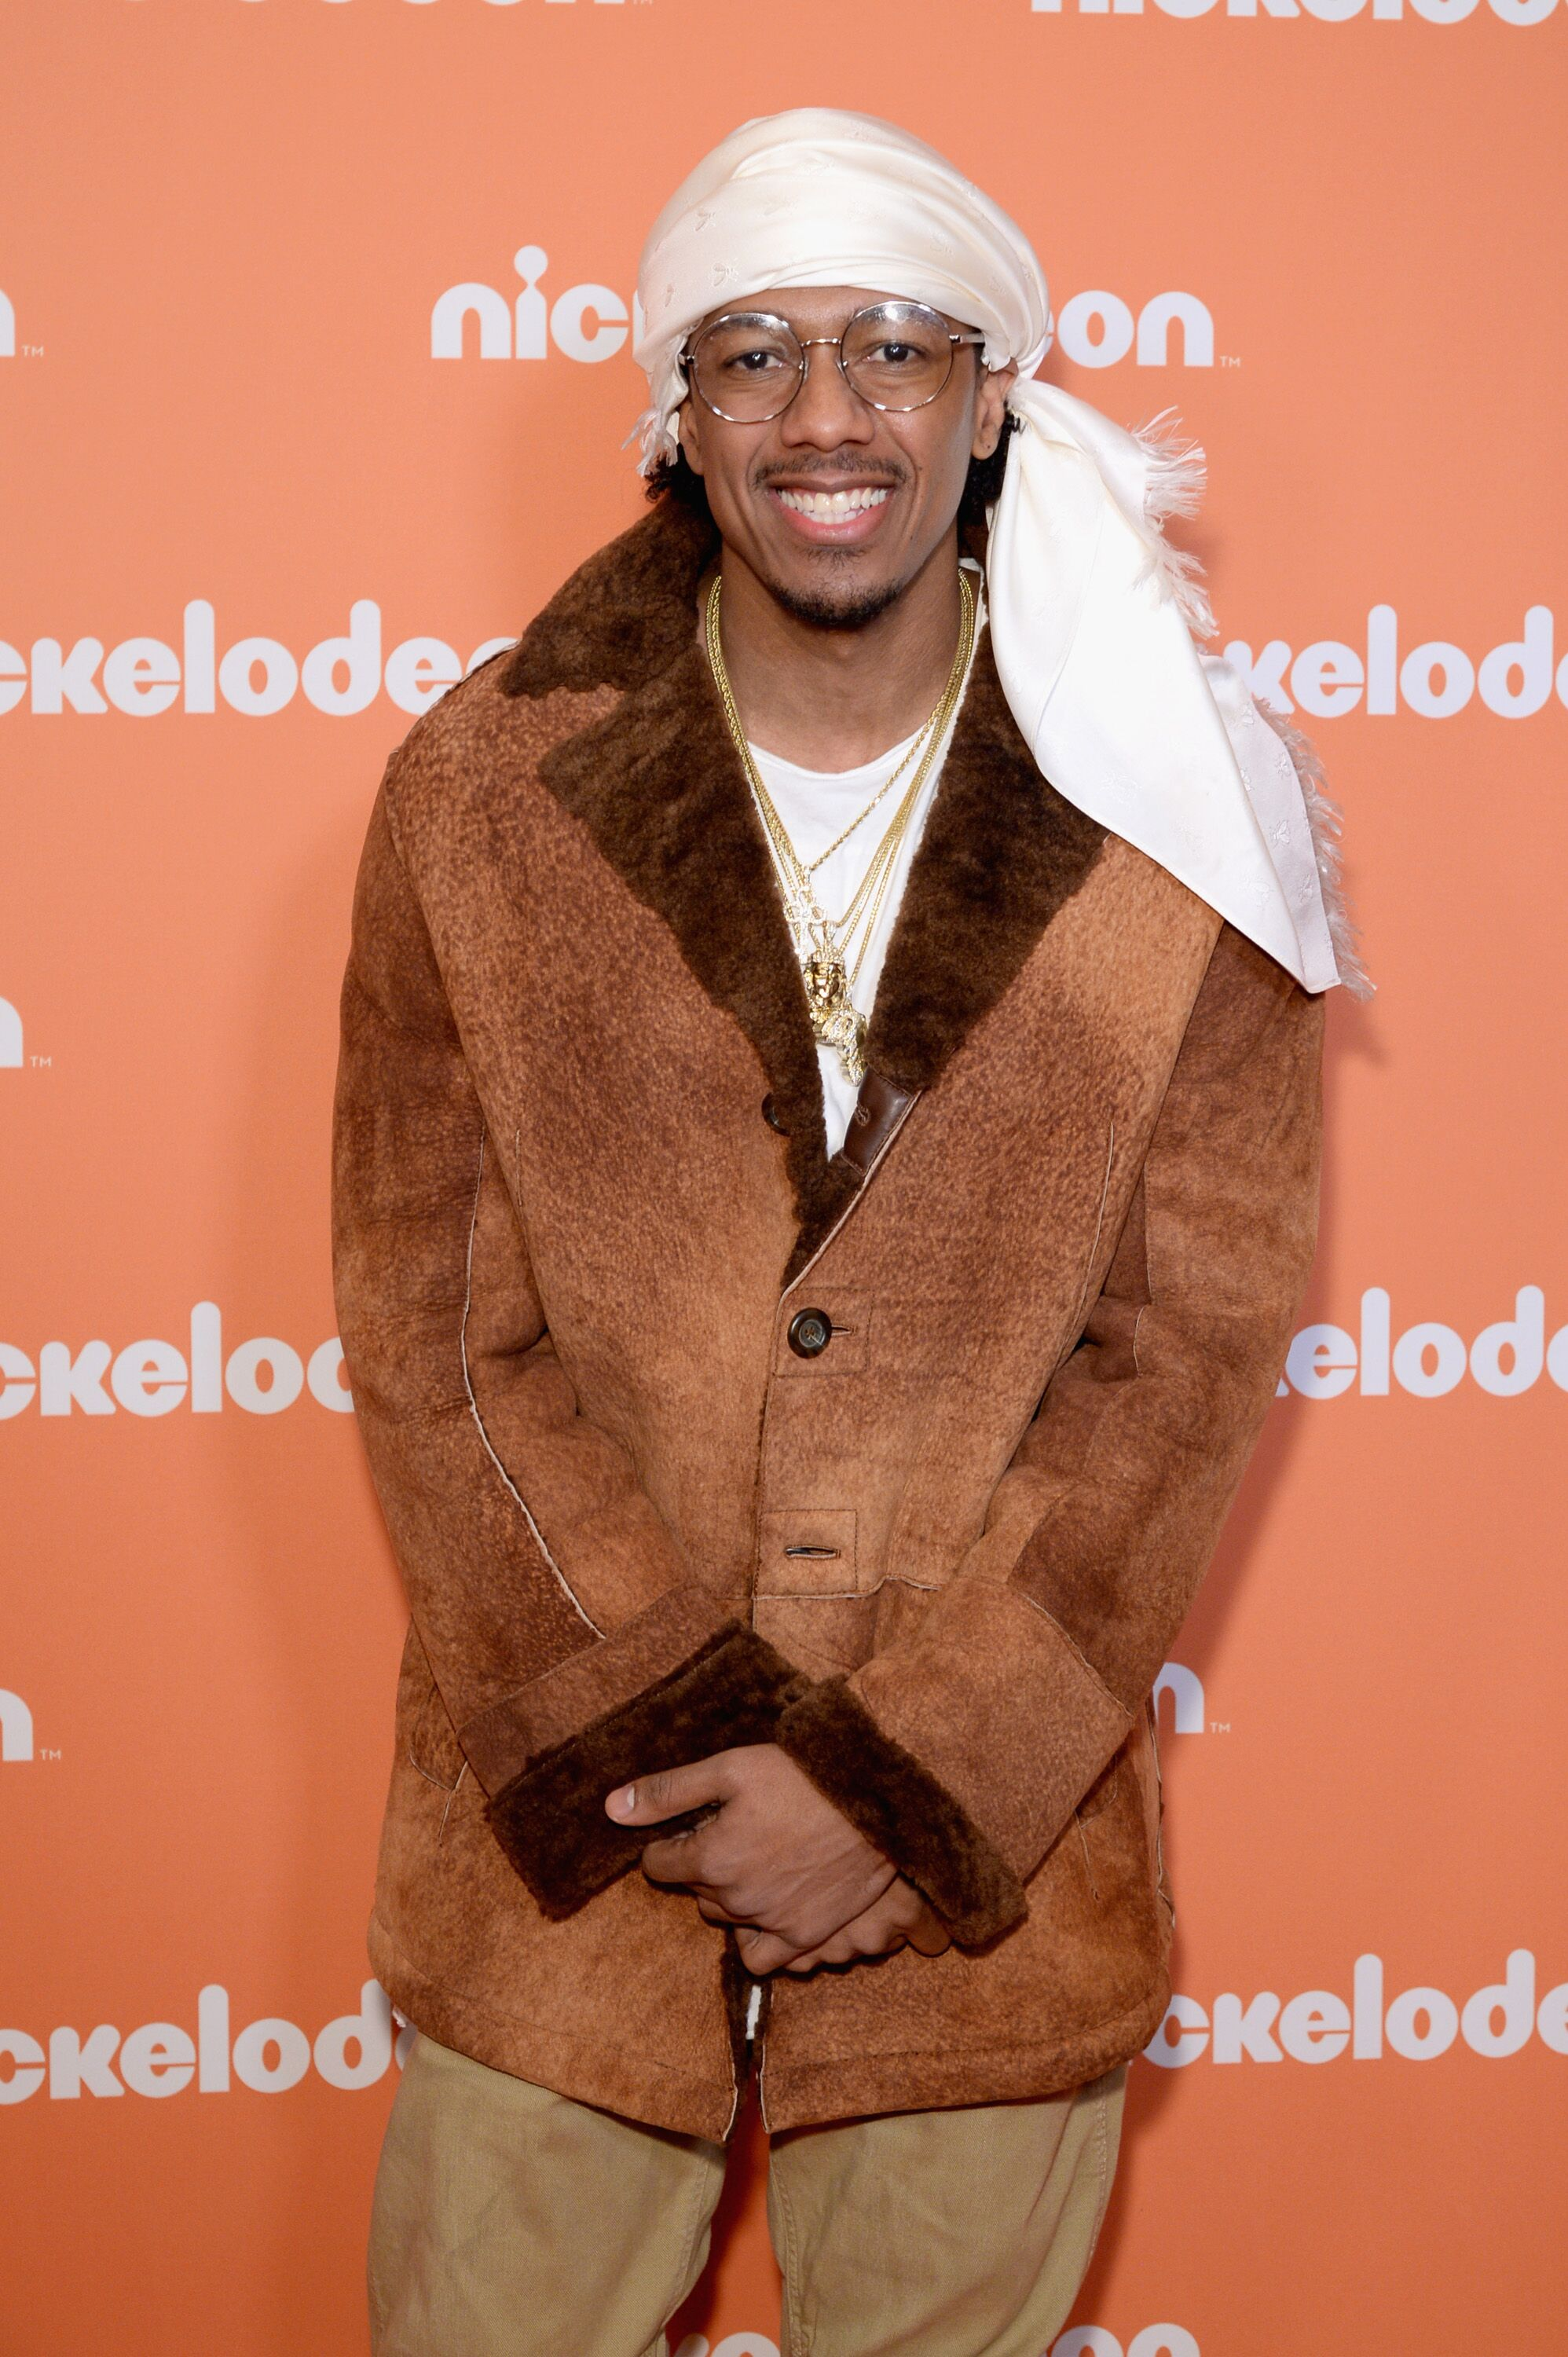 Nick Cannon posing at a Nickelodeon event | Source: Getty Images/GlobalImagesUkraine